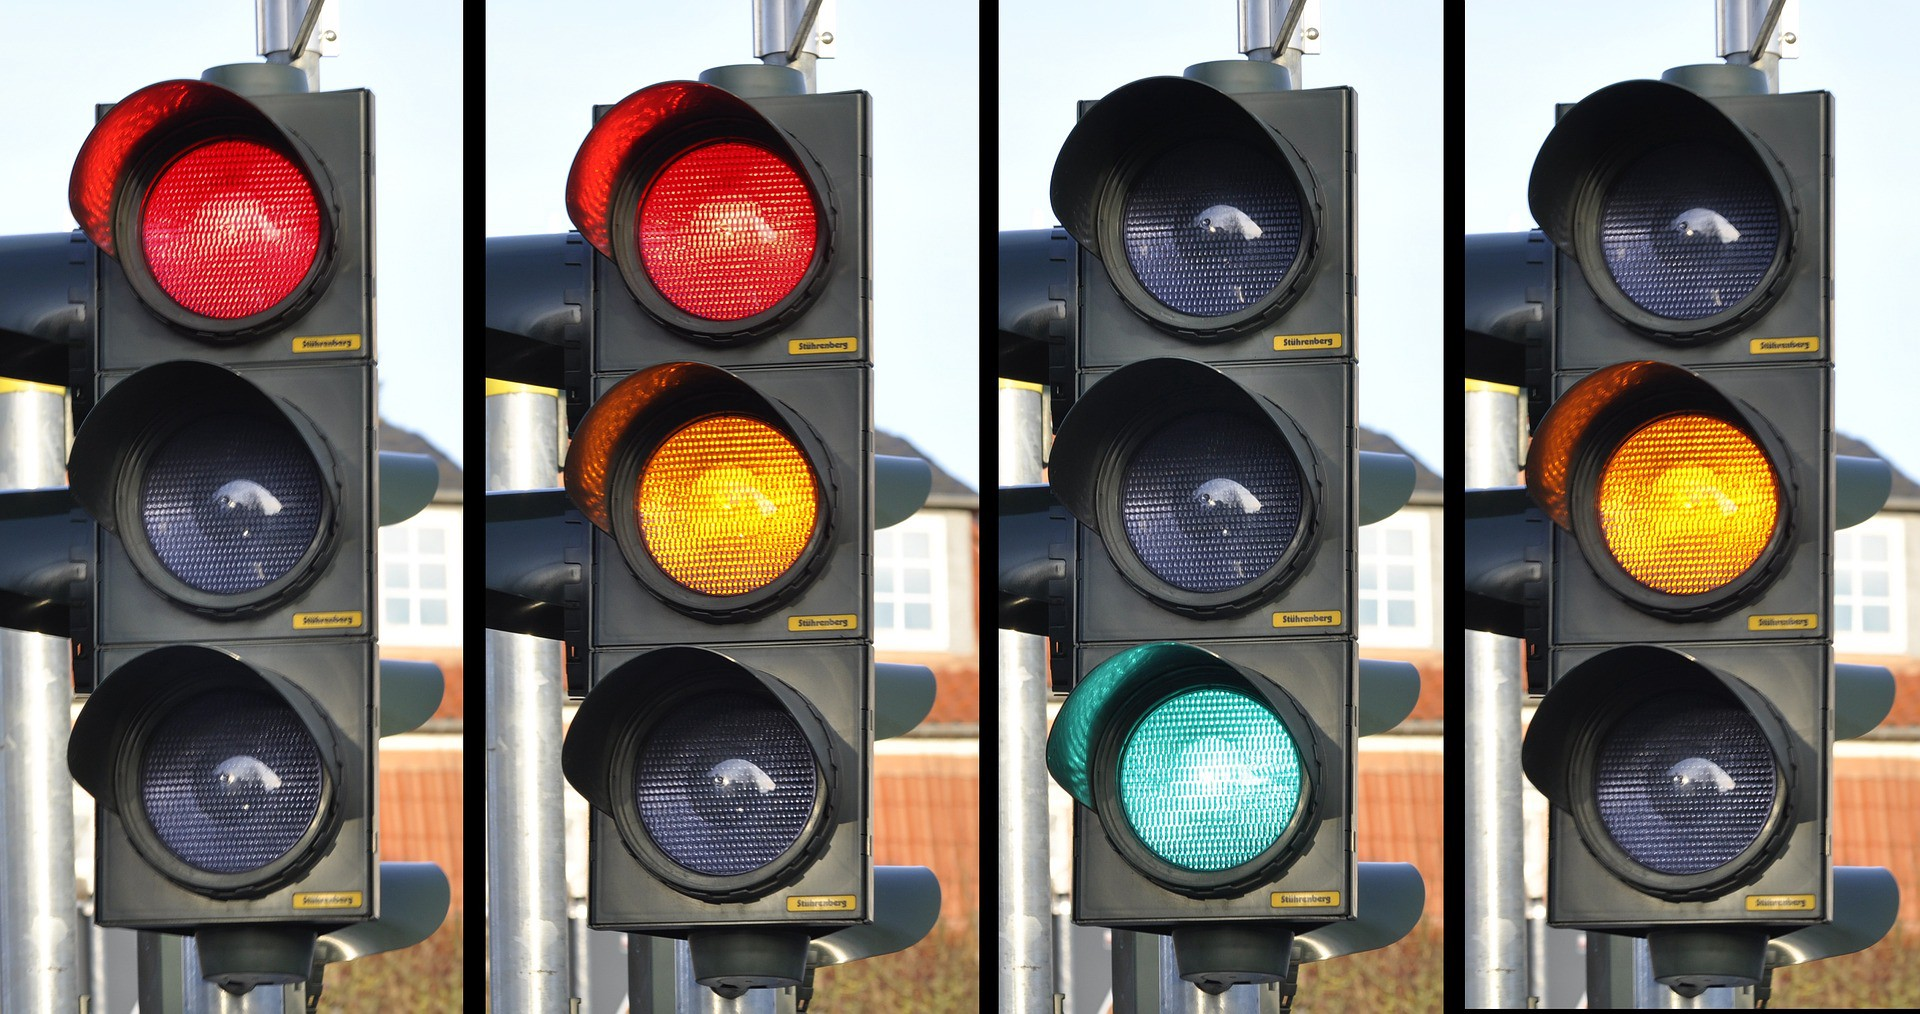 Playing with Raspberry Pi and Python: Traffic Lights